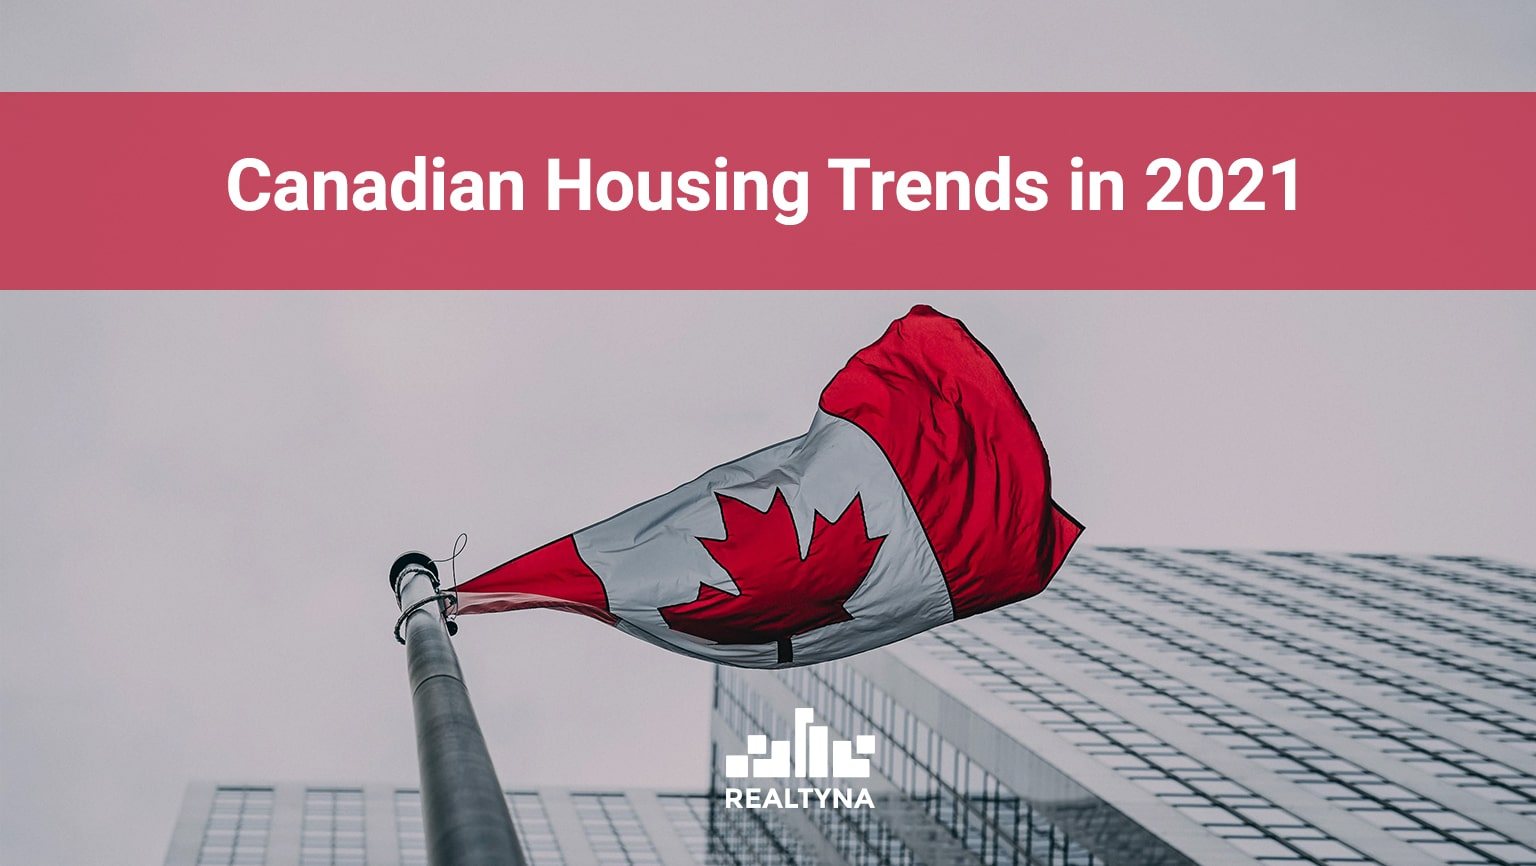 Canadian housing trends